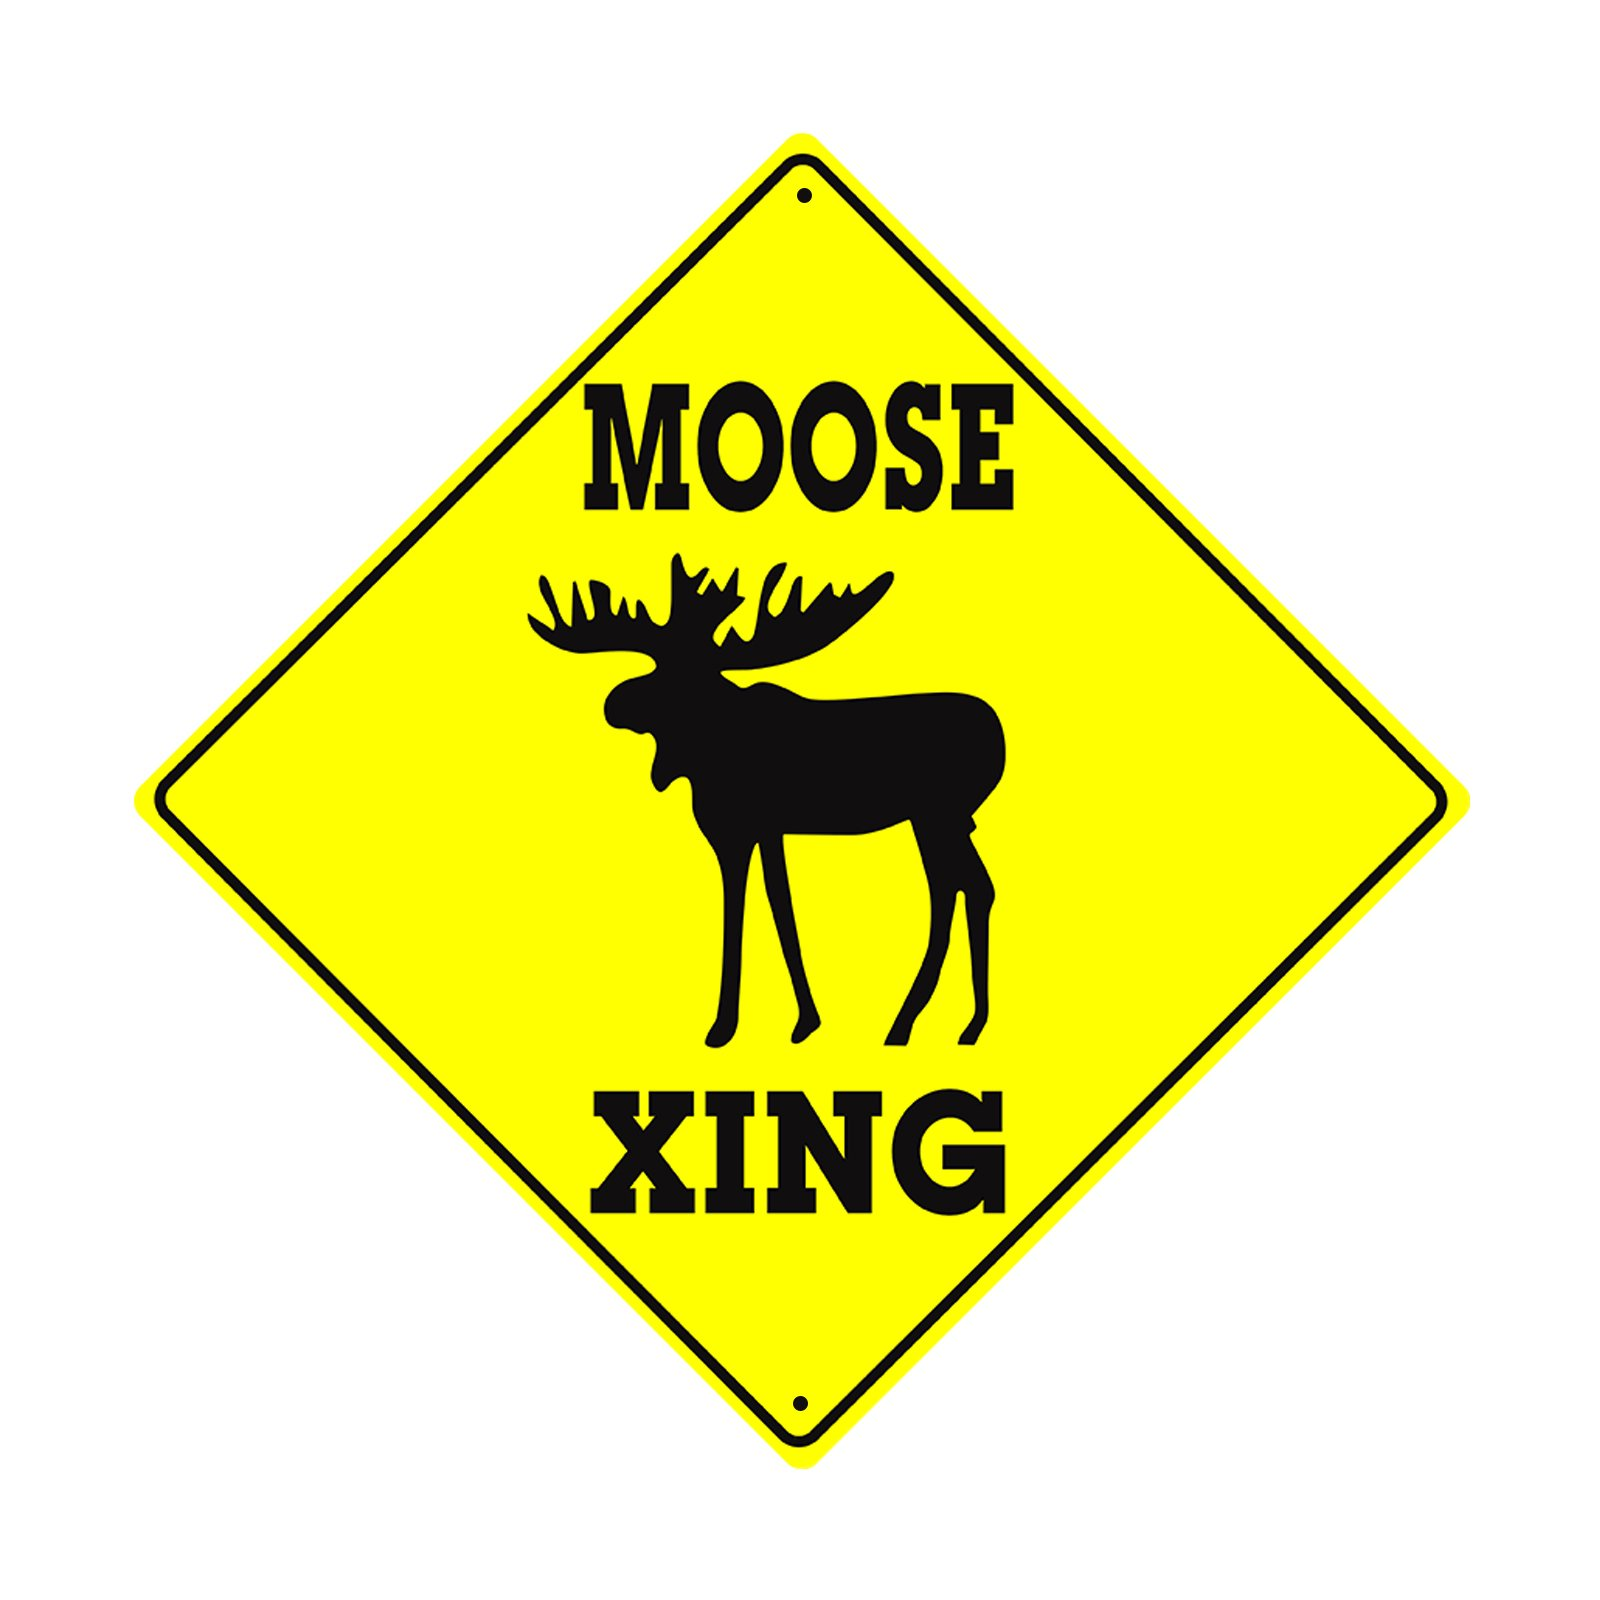 Moose Xing Crossing Wildlife Animal Caution Danger Safety Hunter Novelty Road Wall Décor Diamond Metal Aluminum 12''x12'' Sign